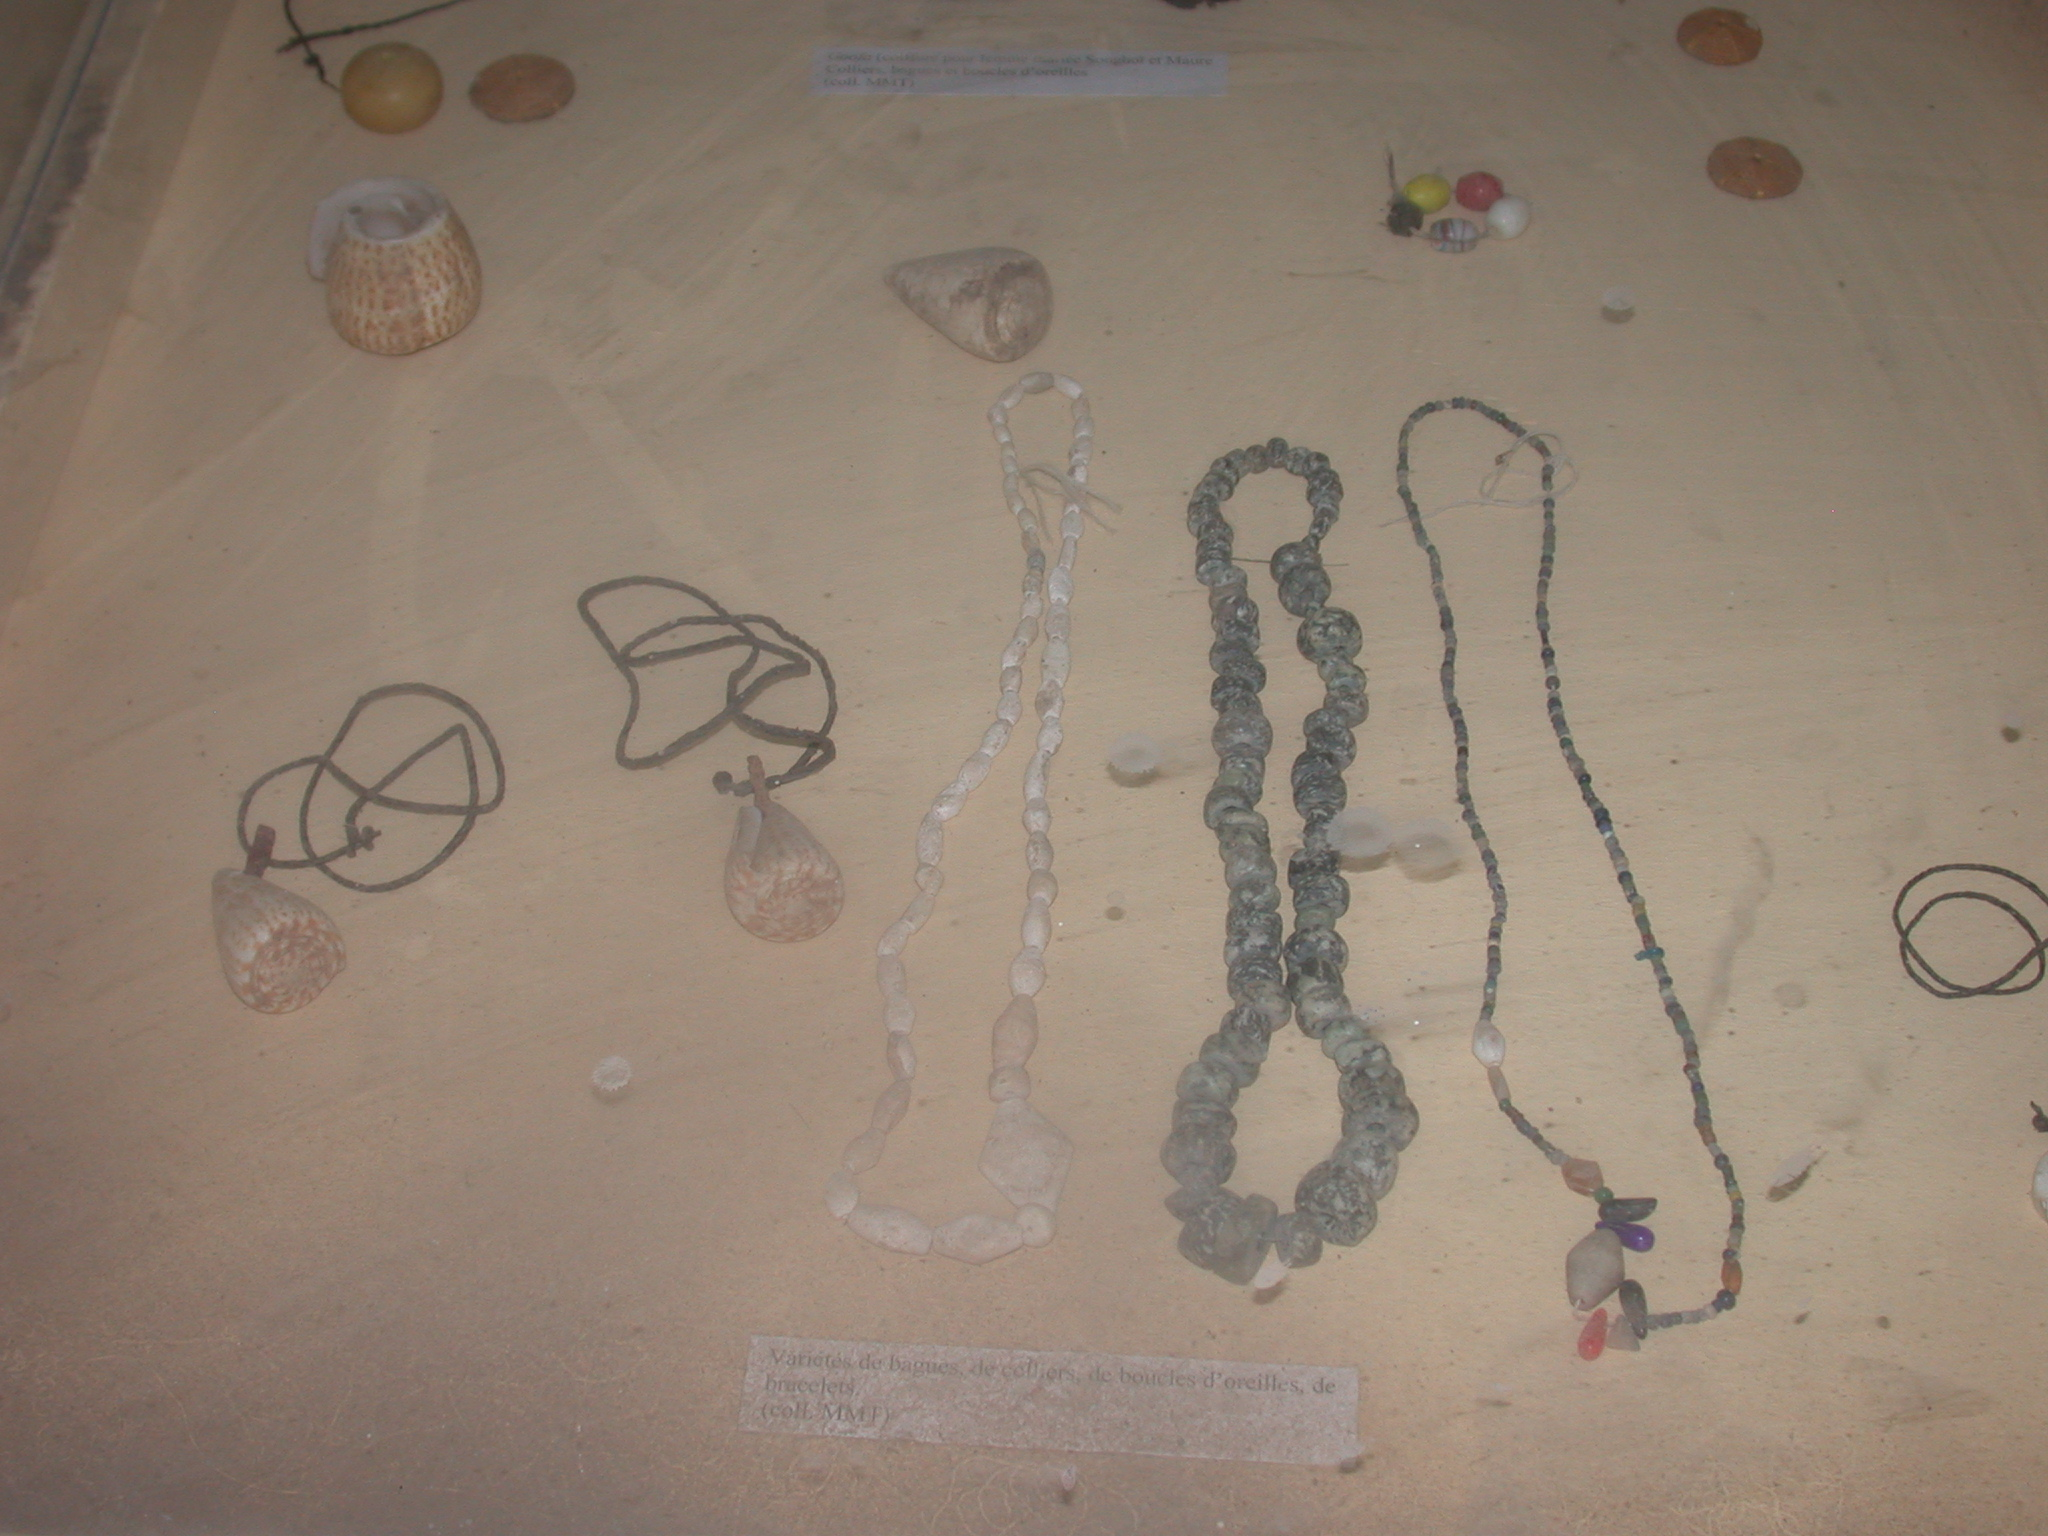 Variety of Rings, Necklaces, Earrings, and Bracelets, Timbuktu Ethnological Museum, Timbuktu, Mali